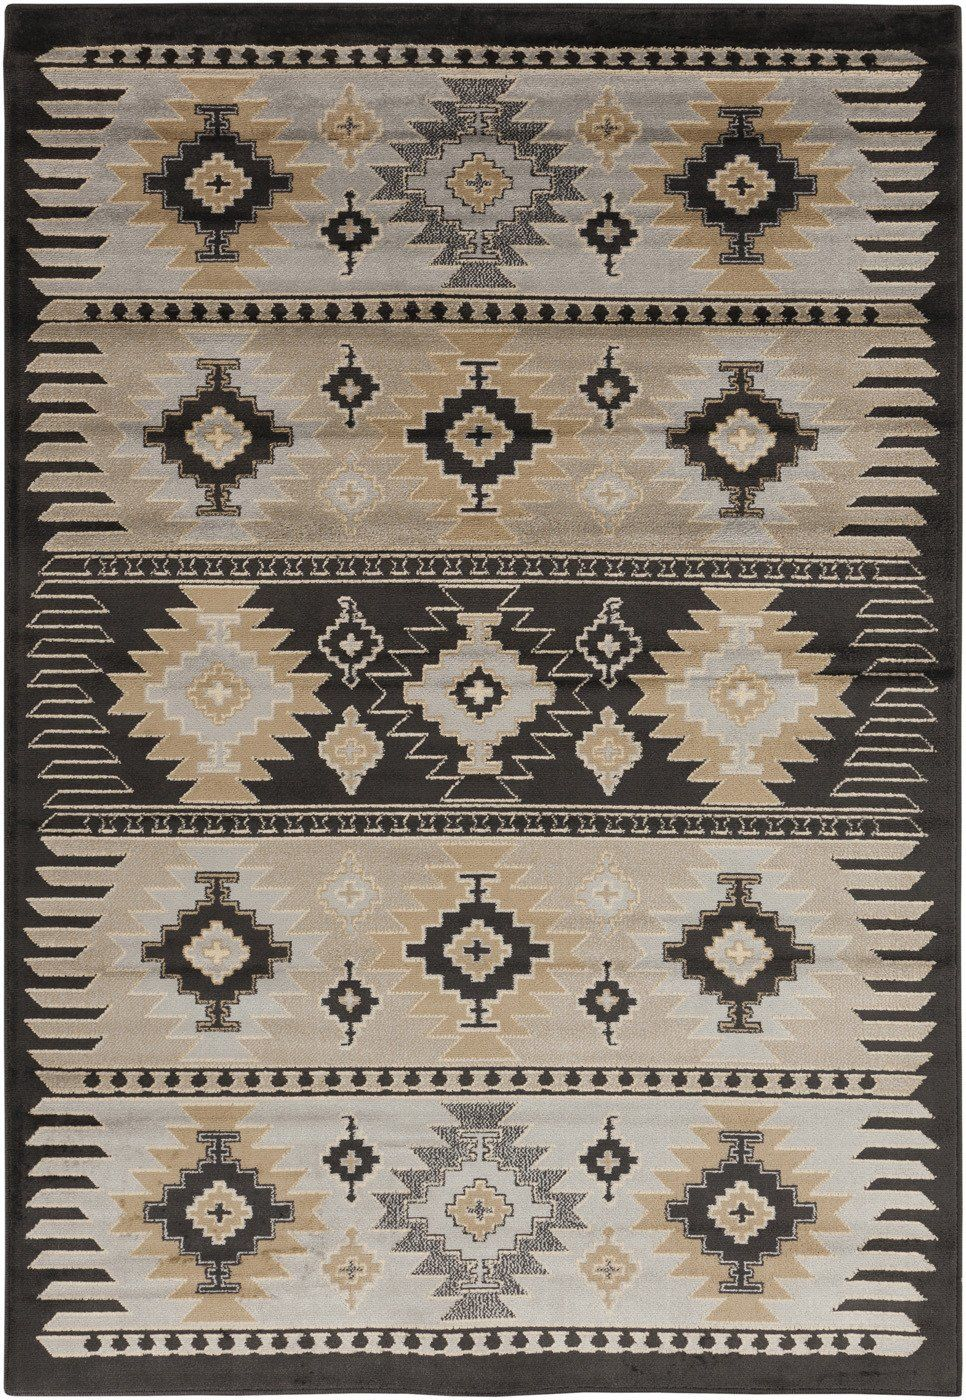 Surya Blowout Sale Up To 70 Off Par1046 23 Paramount Southwest Area Rug Gray Black Only Only